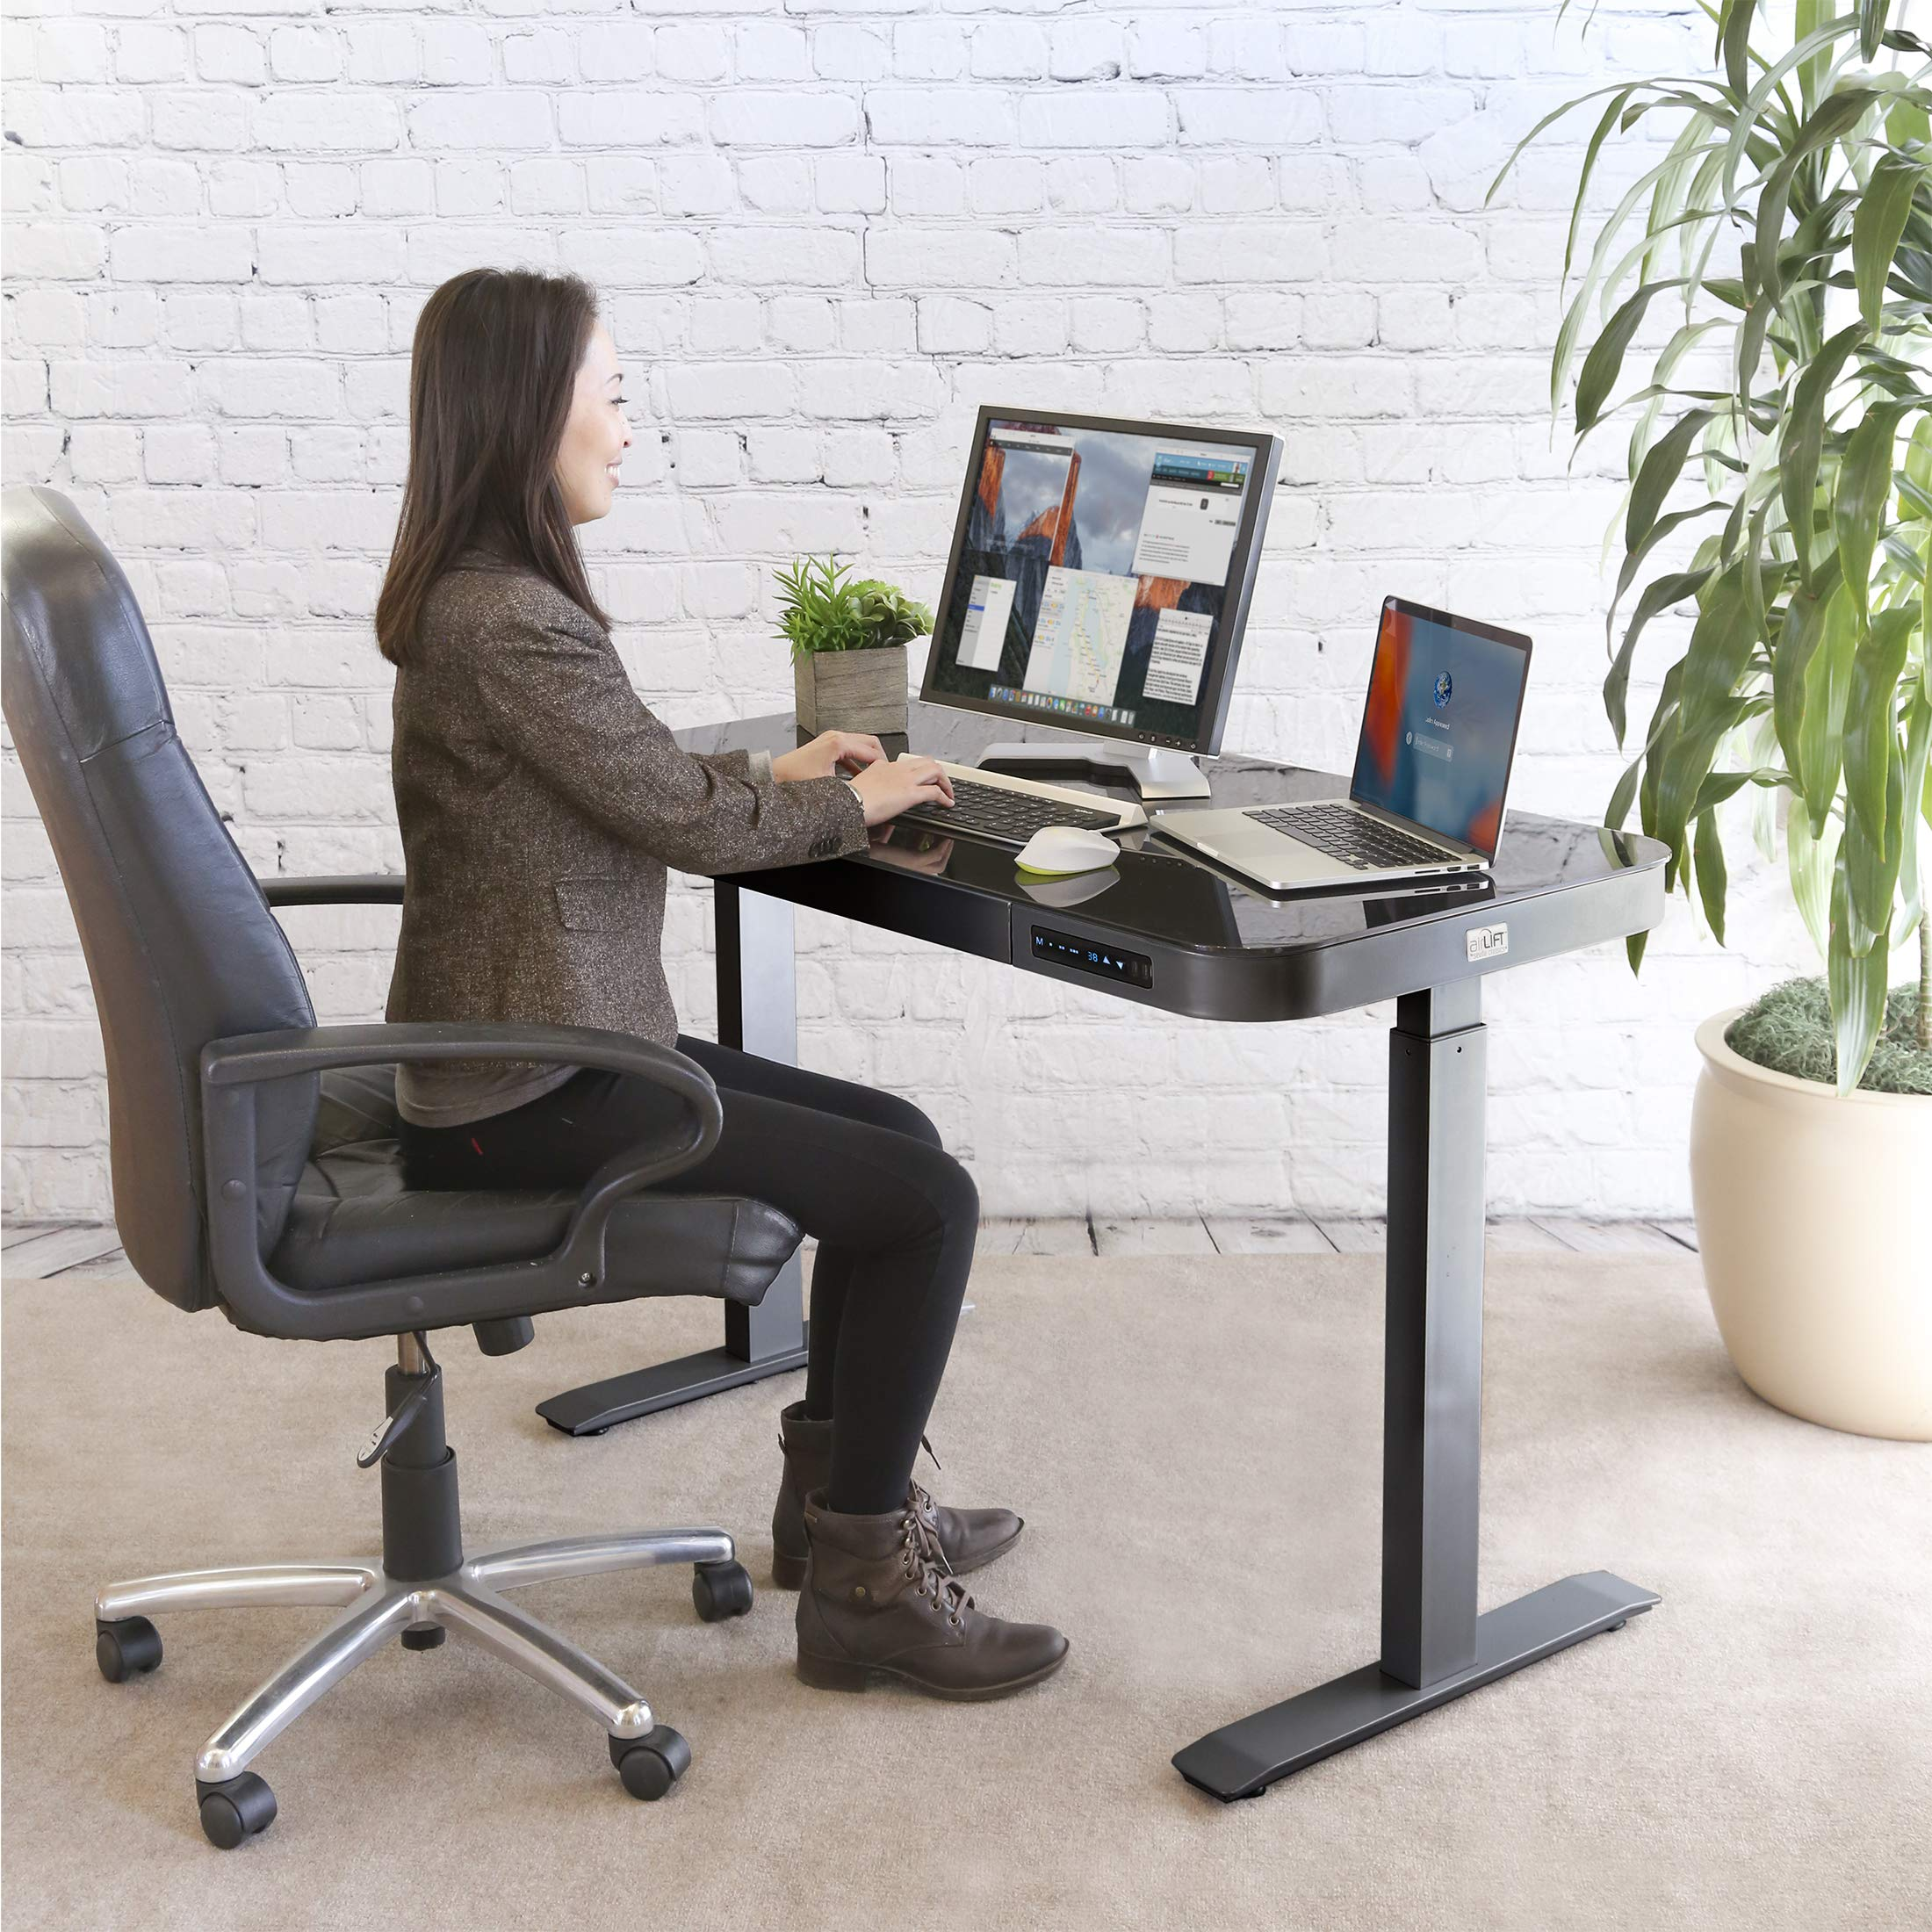 Seville Classics AIRLIFT Tempered Glass Electric Standing Desk with Drawer, 2.4A USB Ports, 3 Memory Buttons (Max. Height 47'') Dual Motors, Gray with Black Top by Seville Classics (Image #3)